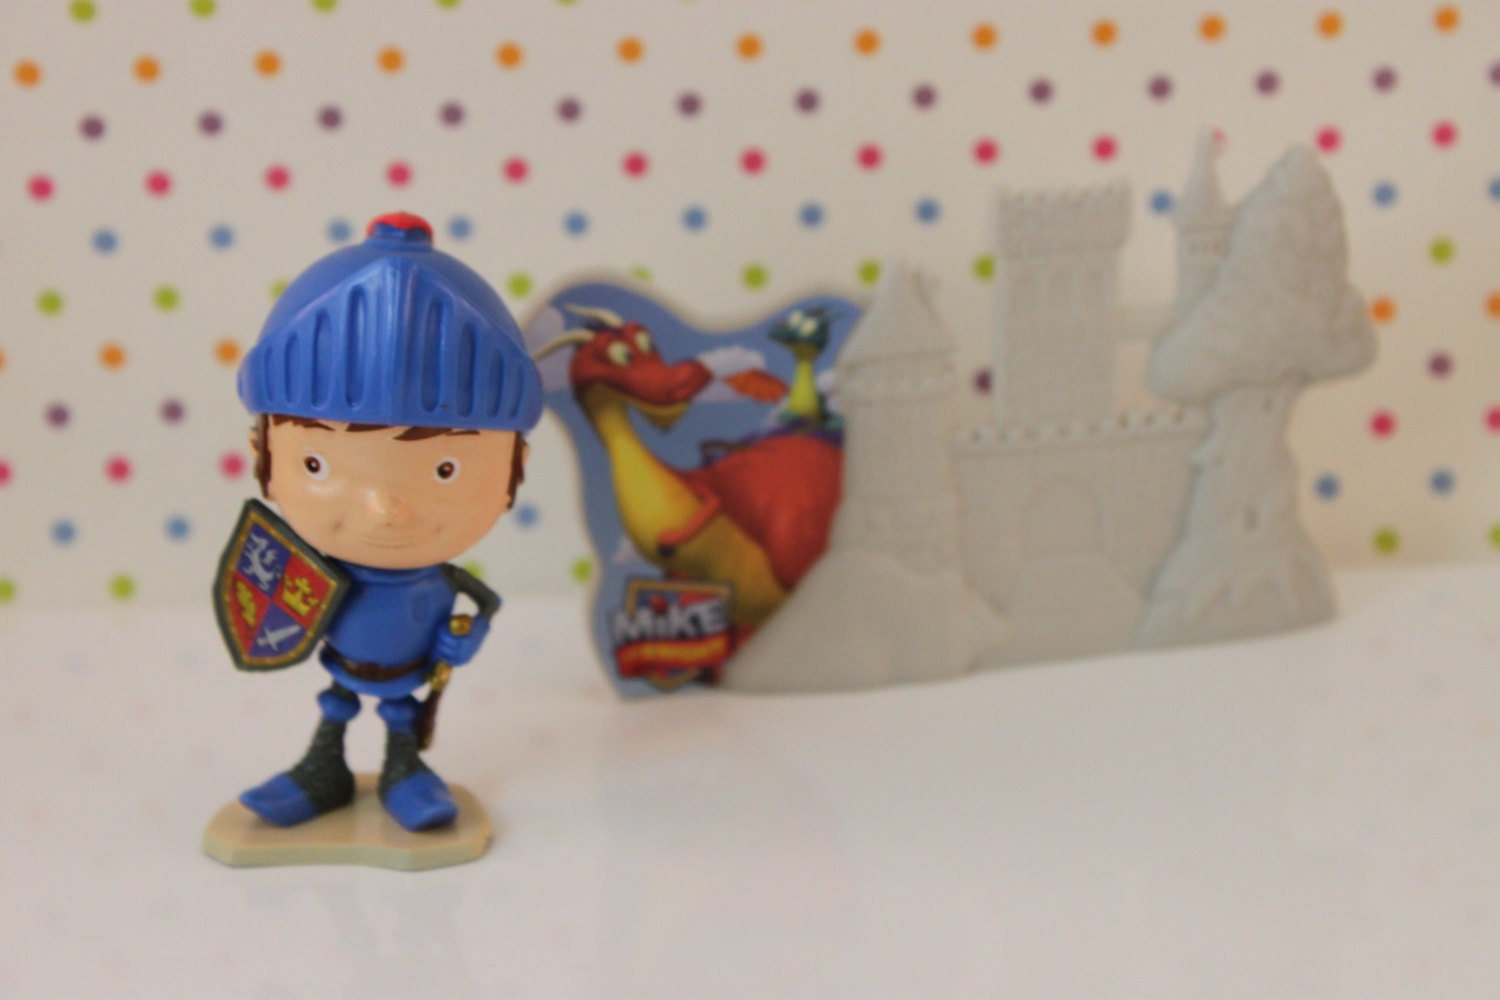 Mike The Knight Cake Topper Kit Toppers Decorations Etsy